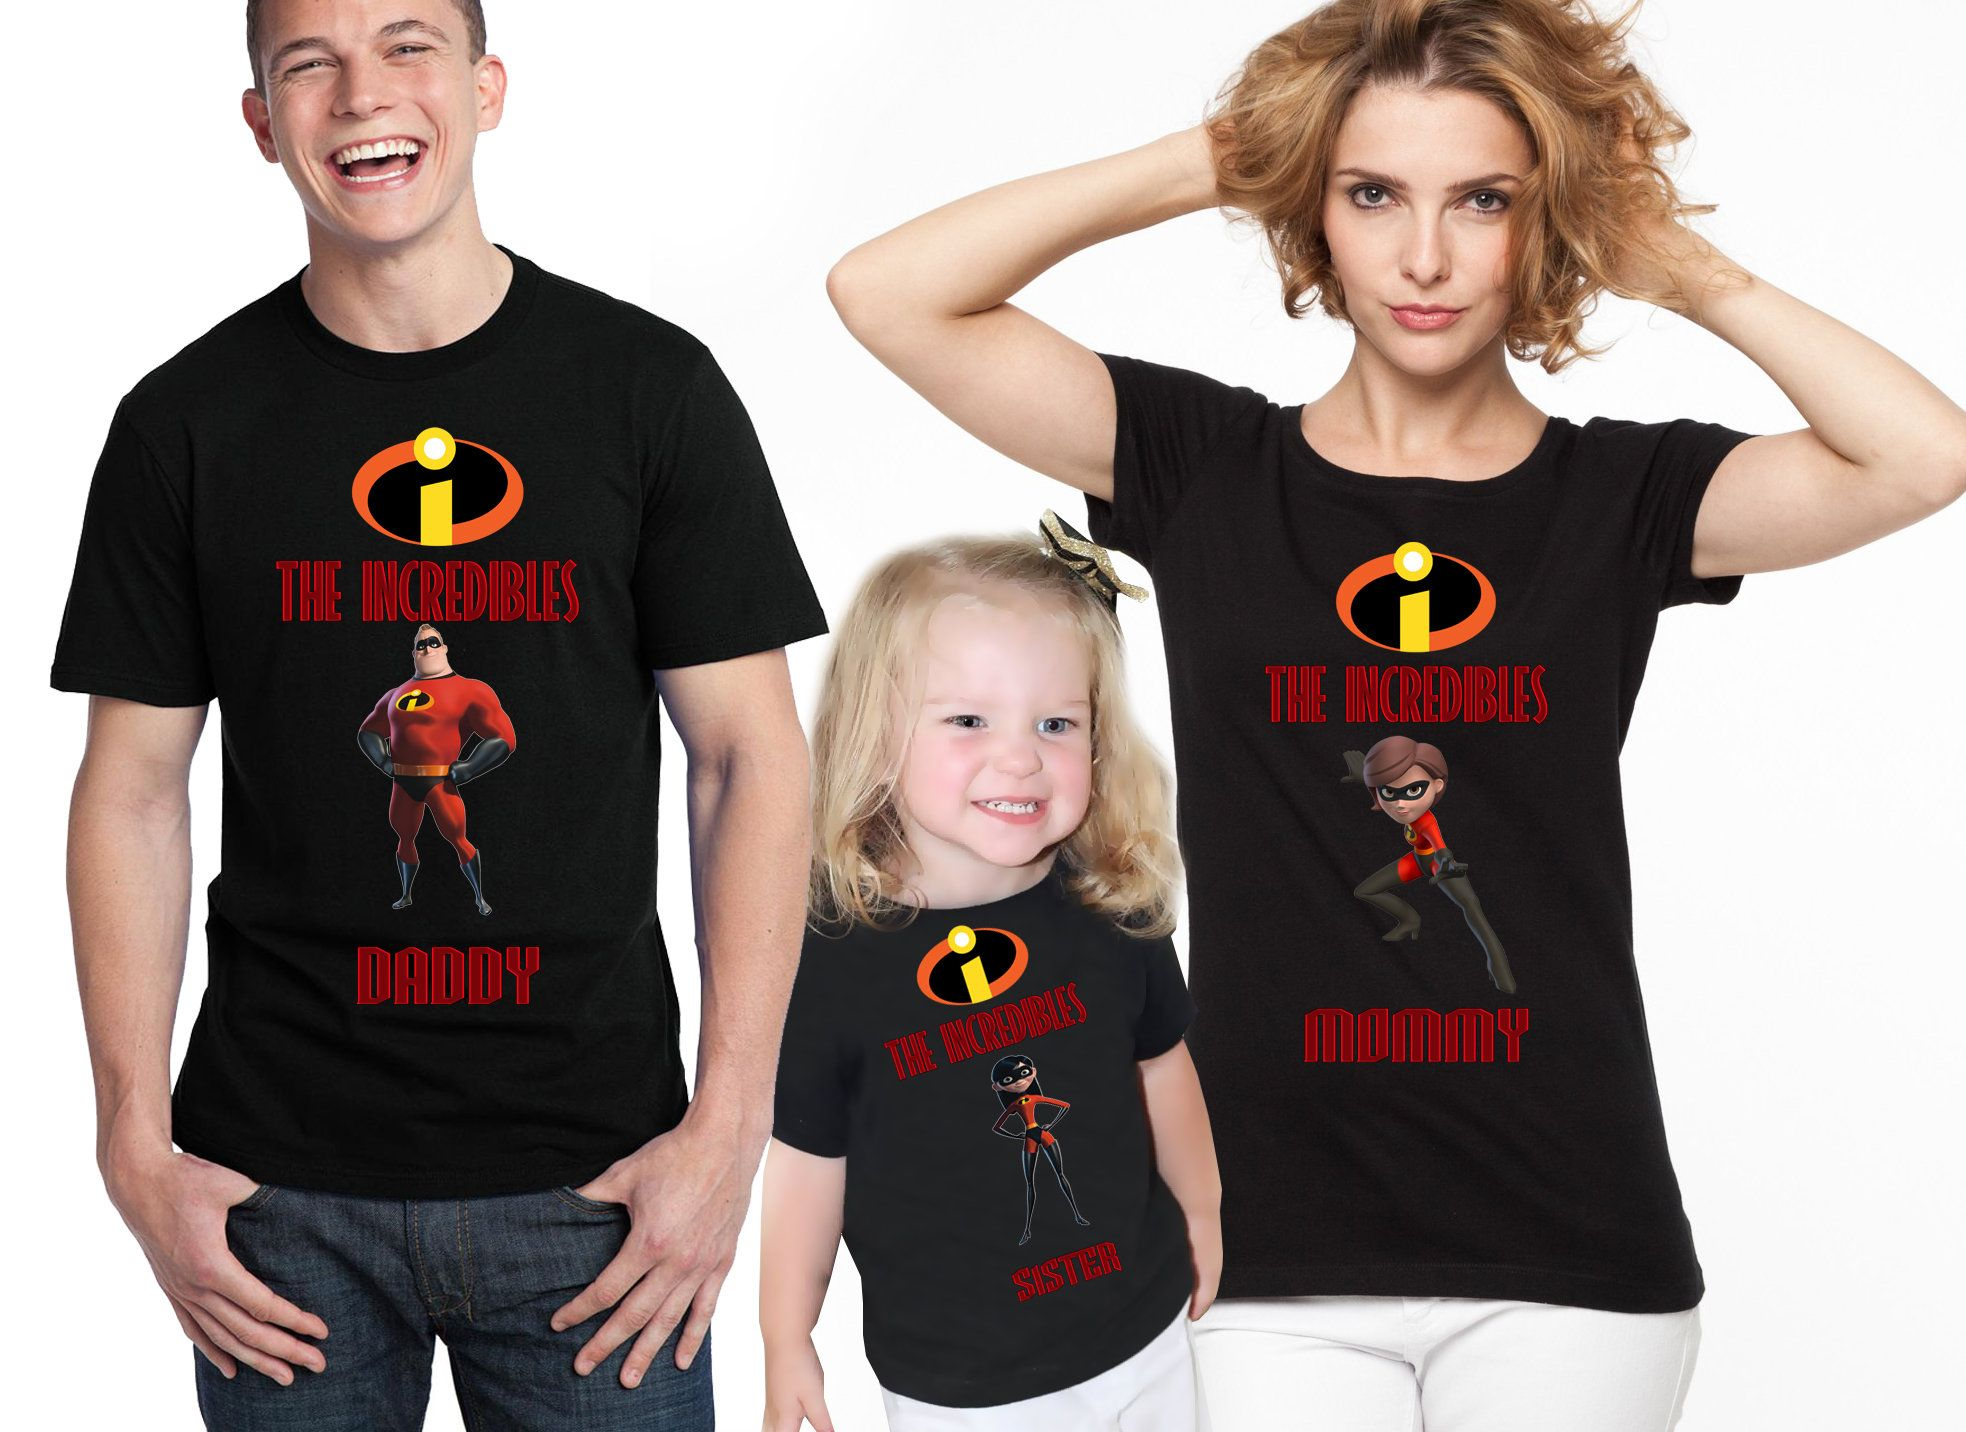 831feafe7 Birthday Family The Incredibles Shirts The Incredibles T-Shirt The  Incredibles Shirts Violet Parr Mr. Incredibles Elastigirl Dash Parr by ...